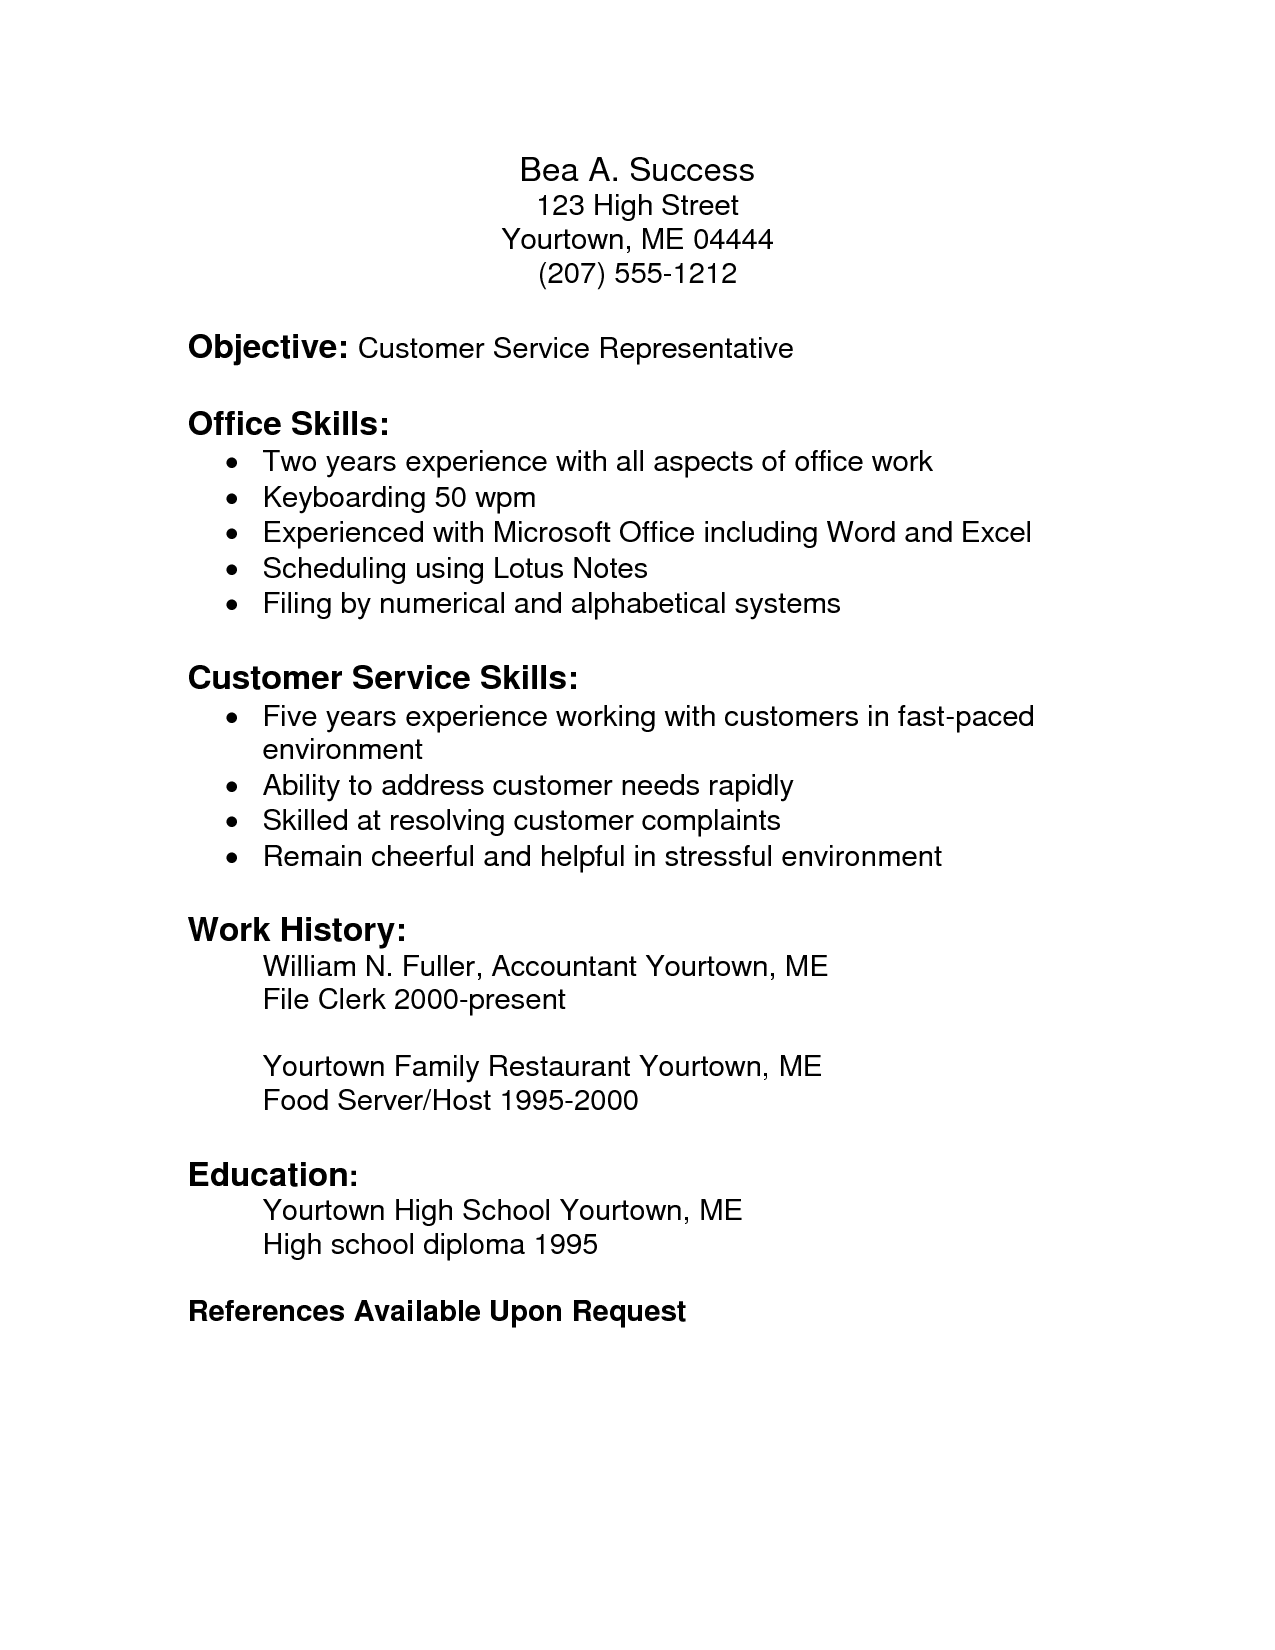 Copy And Paste Resume Templates Customer Service Skills Resume Examples  Sample Resume Center